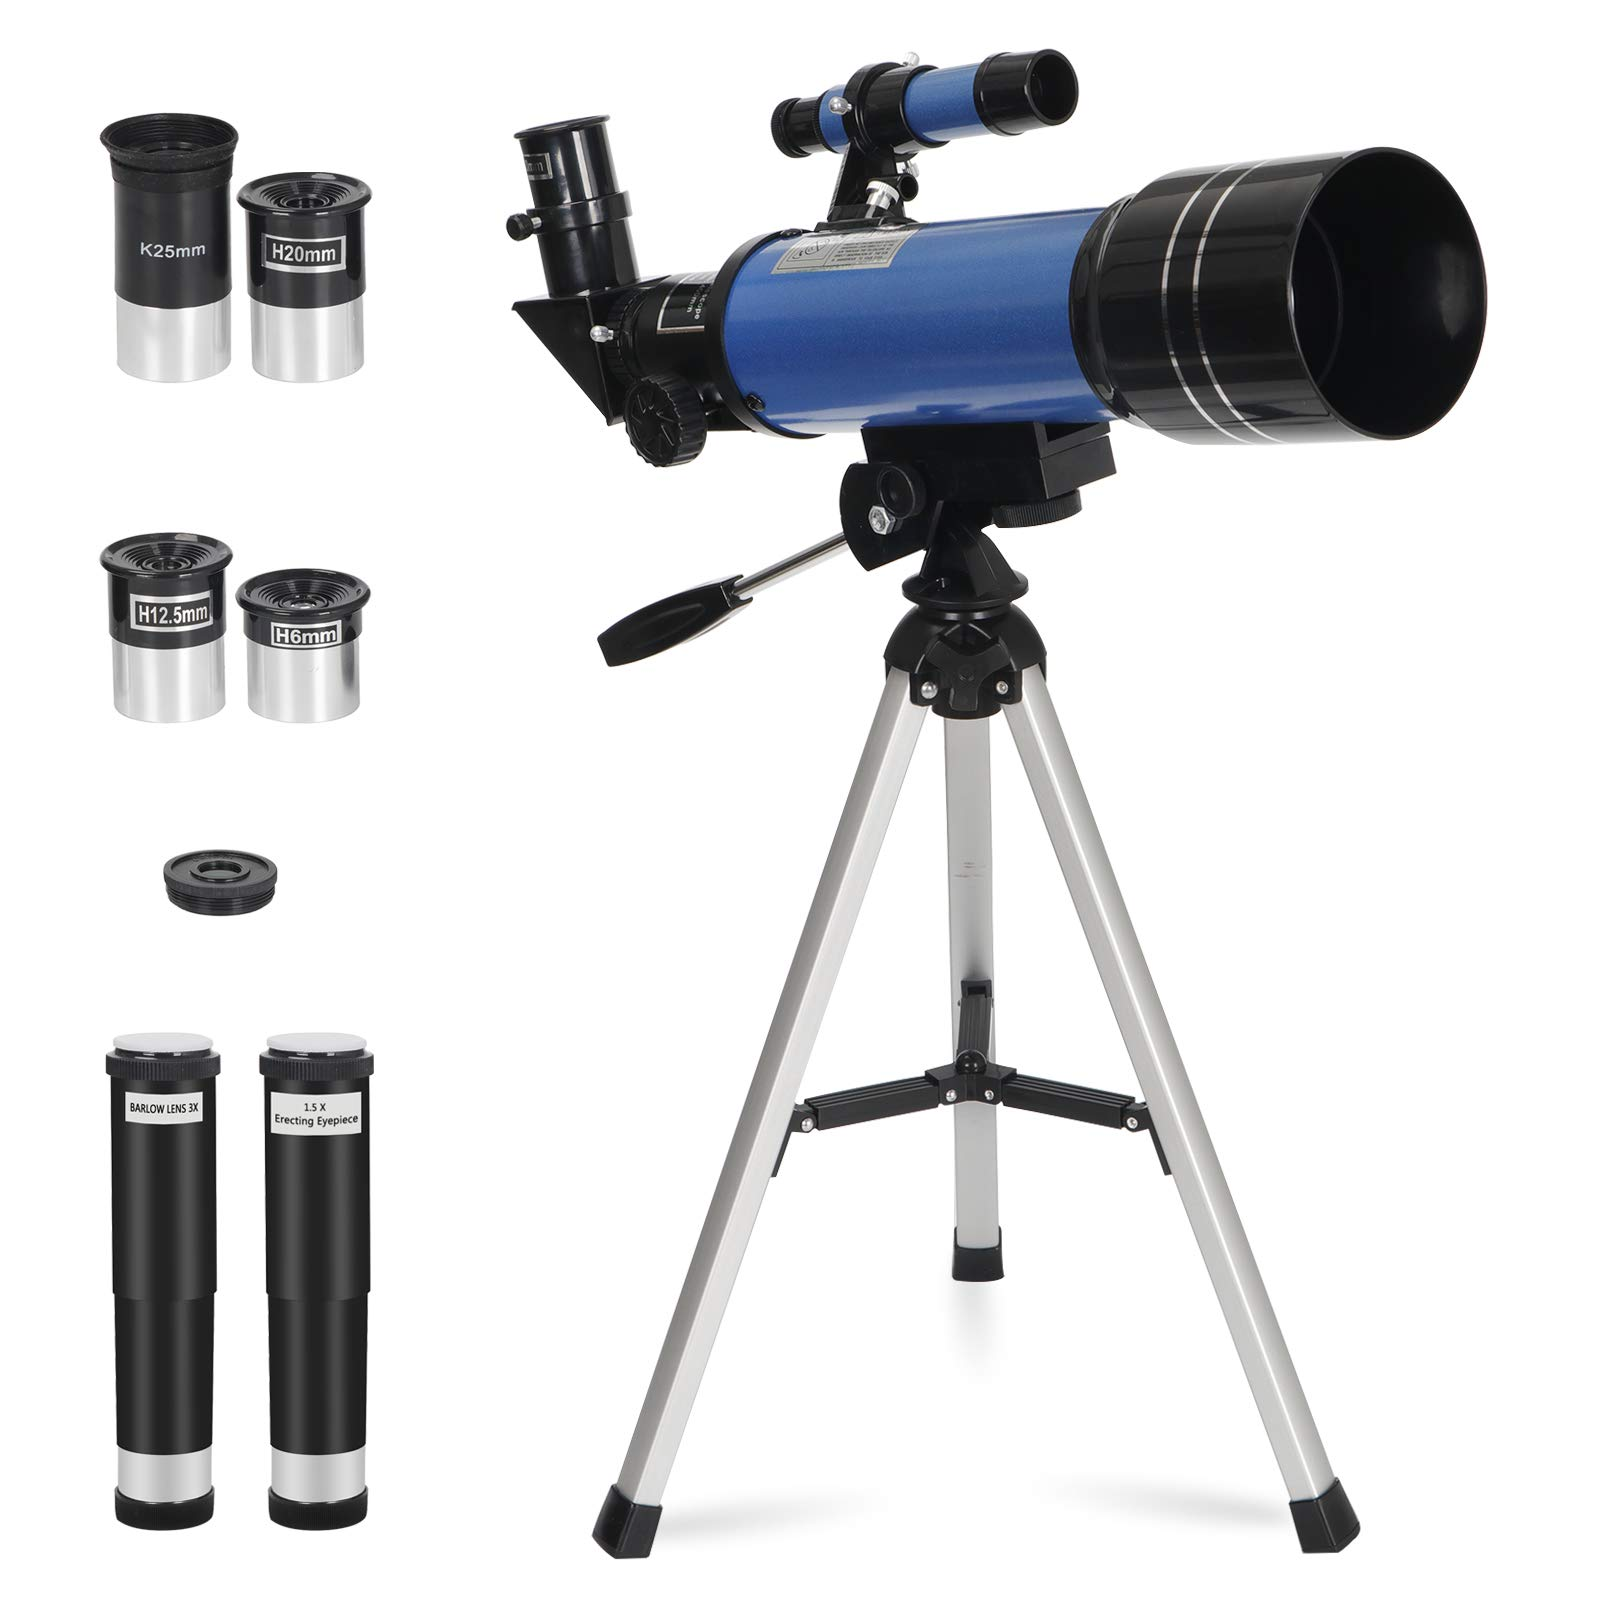 ZENY 70mm Refractor Telescope Portable Telescope for Kids & Astronomy Beginners with Tripod & Finder Scope, Magnification Travel Scope with 3 Magnification eyepieces & Moon Mirror